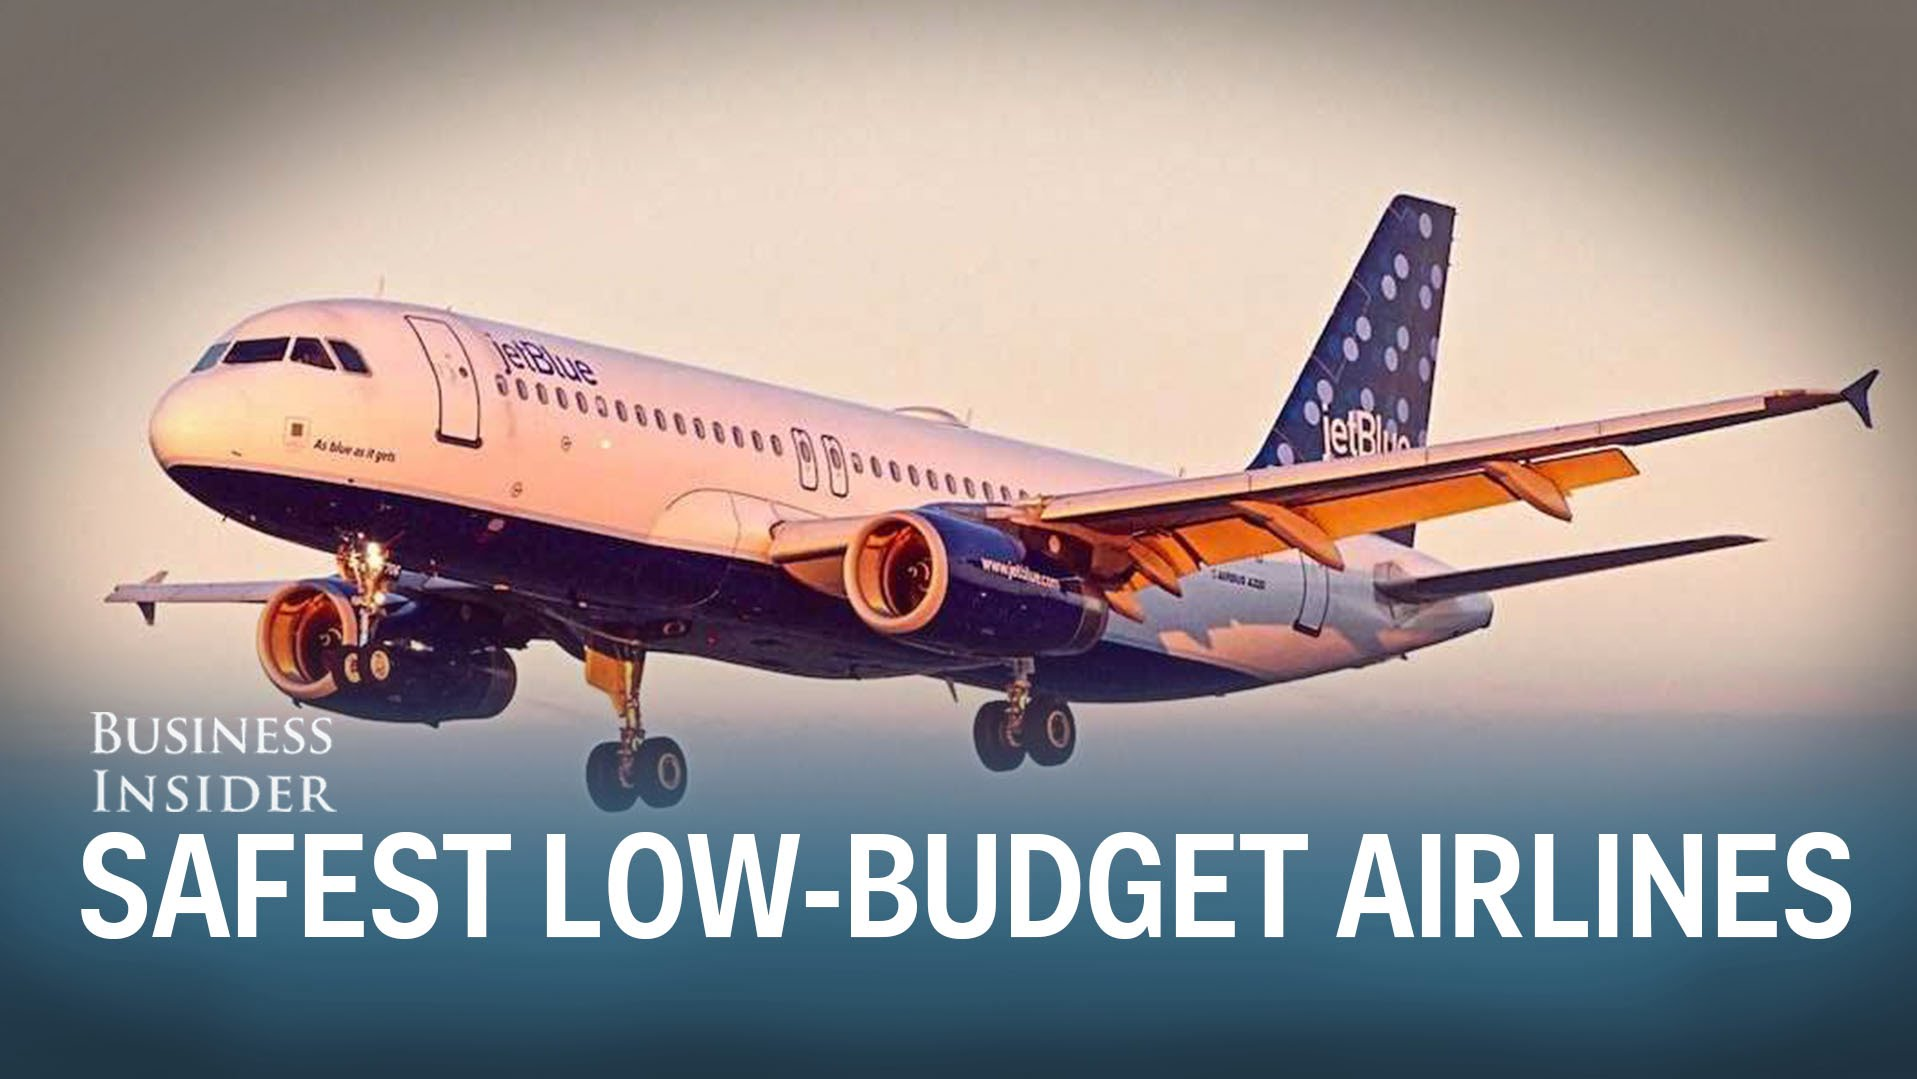 The Safest Low-Cost Airlines